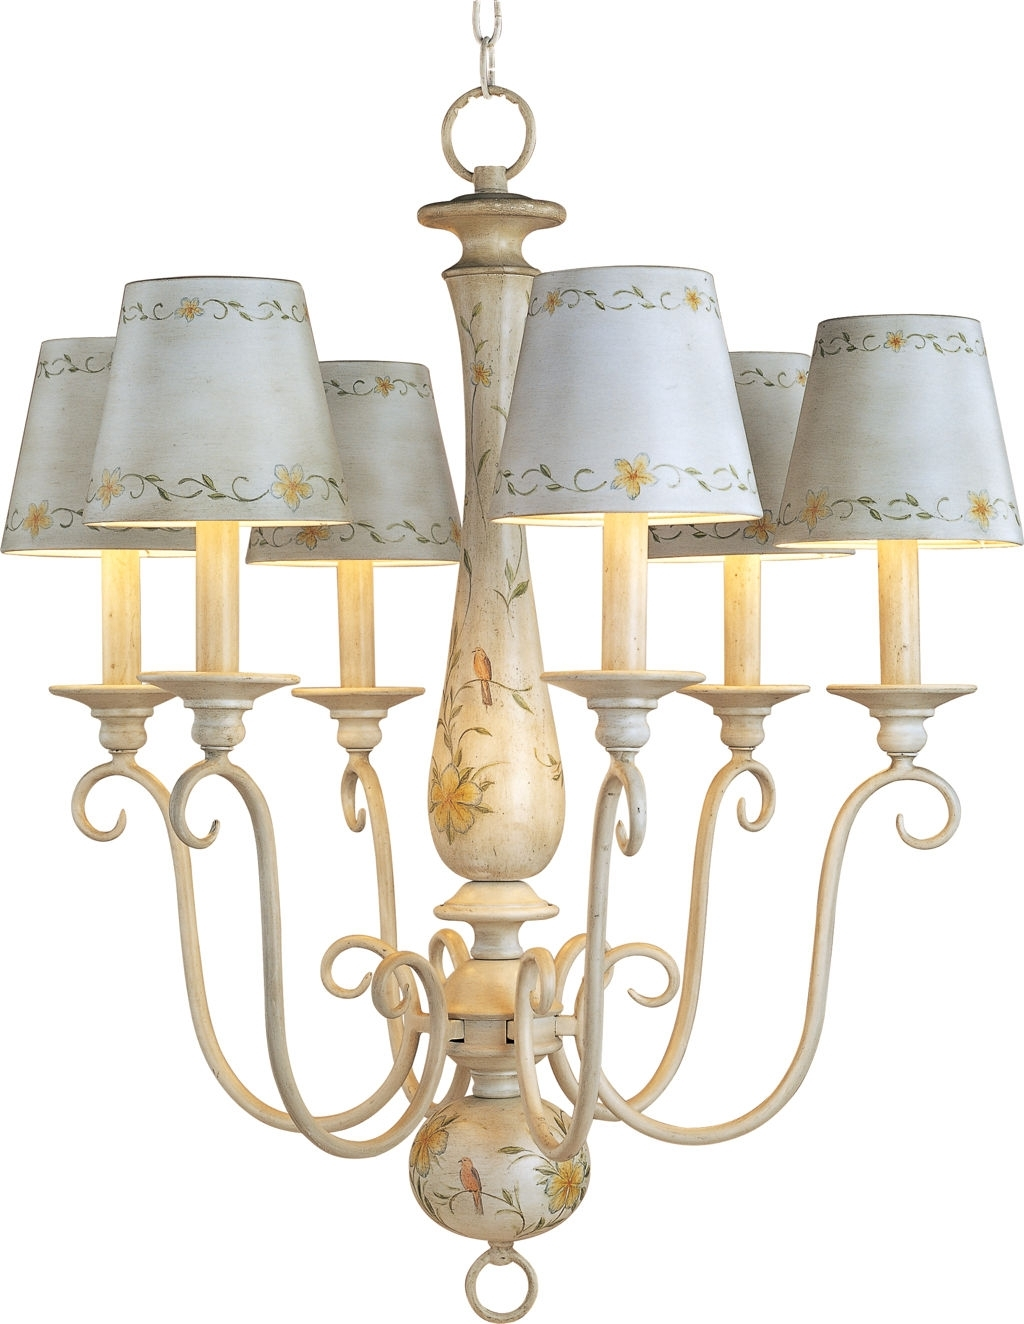 Widely Used Chandelier Lamp Shades Clip On For Chandelier Lamp Shades Plus 5 Inch Lamp Shades Plus Small Clip On (View 20 of 20)